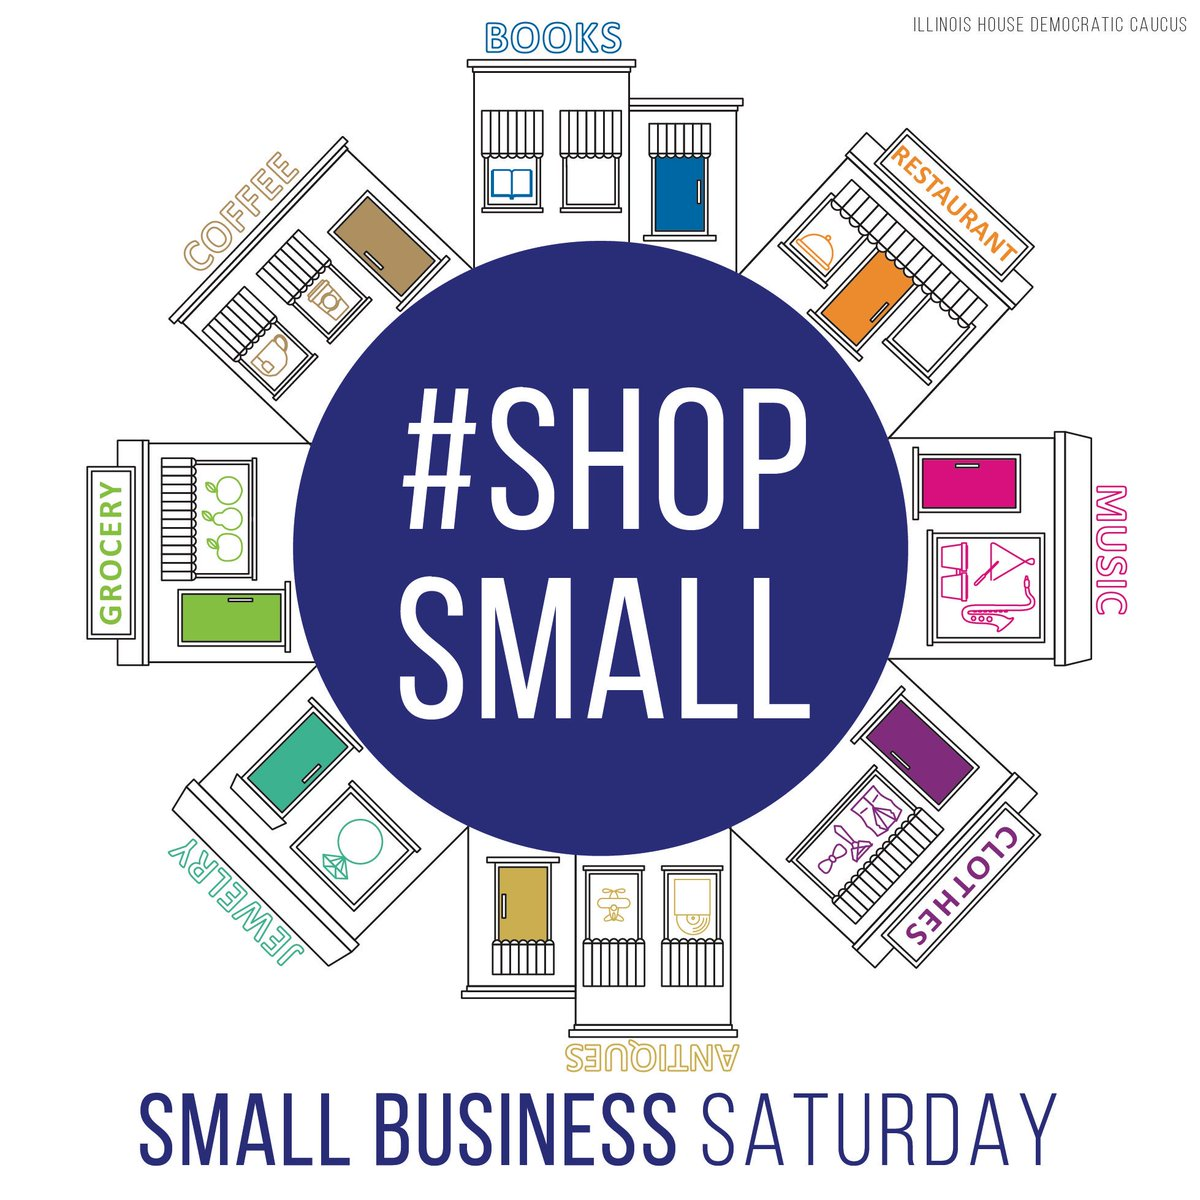 test Twitter Media - Next Saturday, November 25, 2017 is Small Business Saturday!  Nominate three small businesses in the 7th District that are deserving of recognition from our state, and I will visit three businesses next week to honor them!  Feel free to DM me your nominations ASAP! #Shopsmall https://t.co/UMLjzU9ZV4